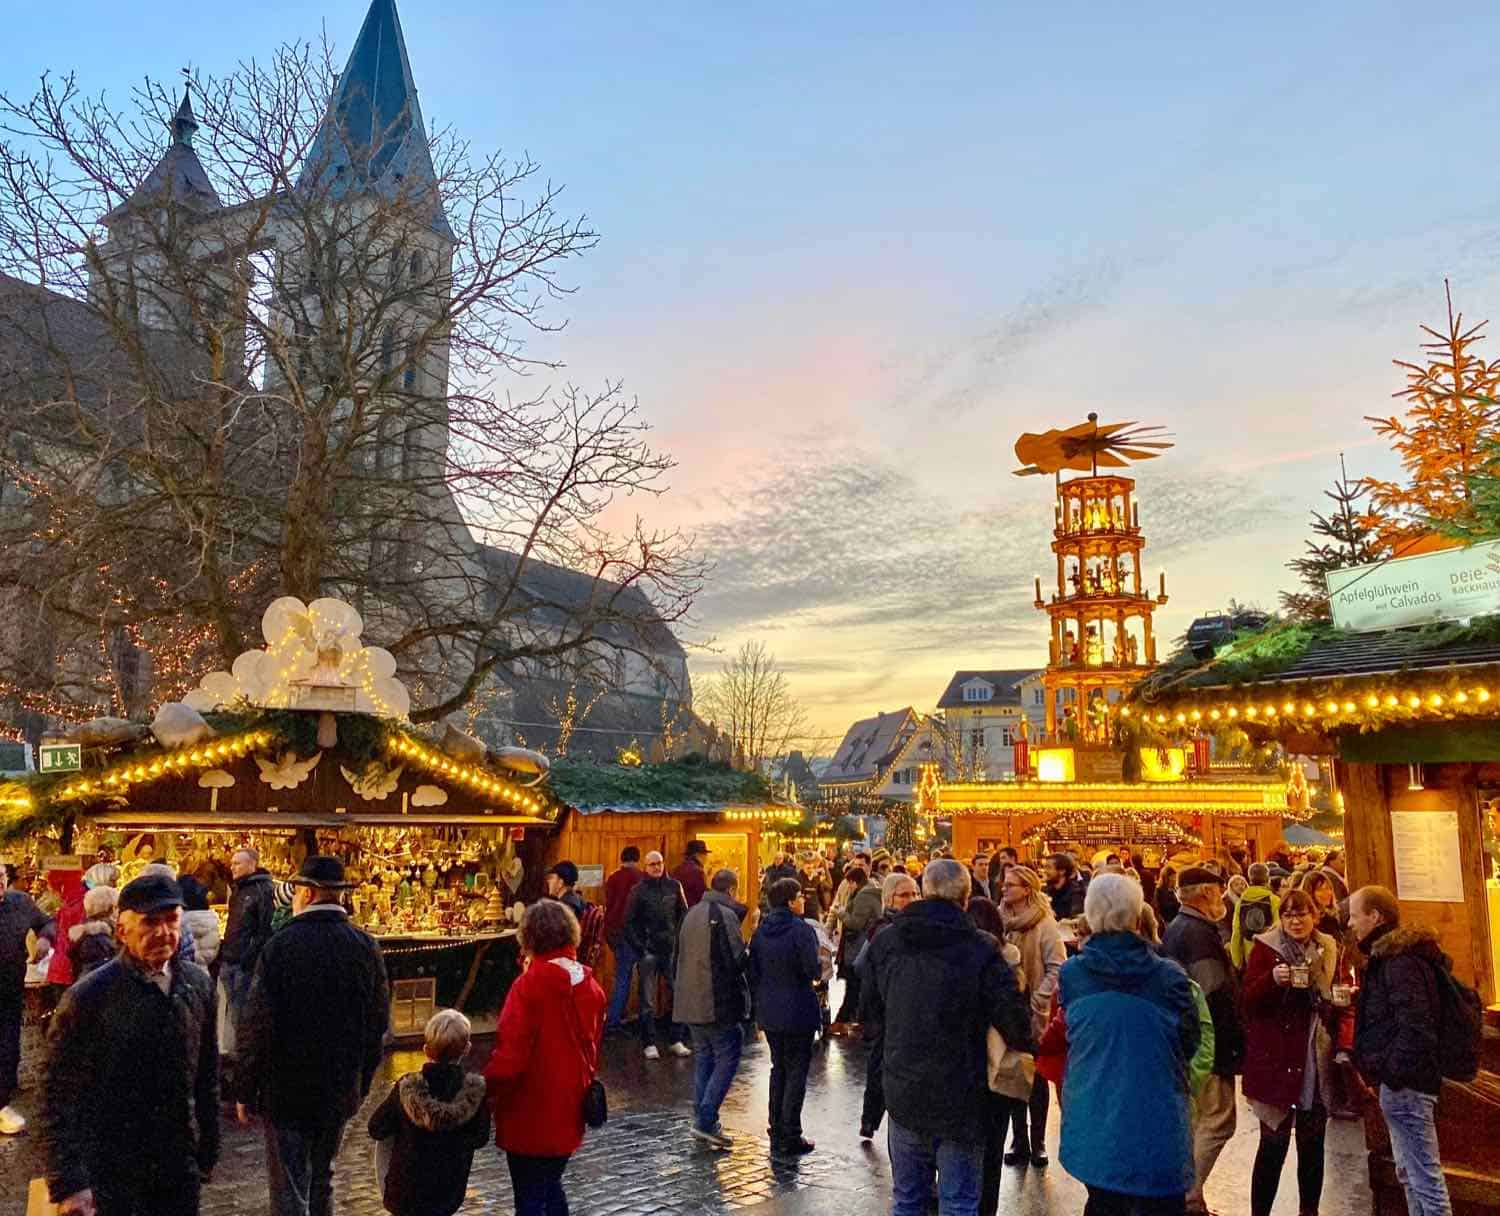 Christmas market at sunset lit up with golden-colored lights